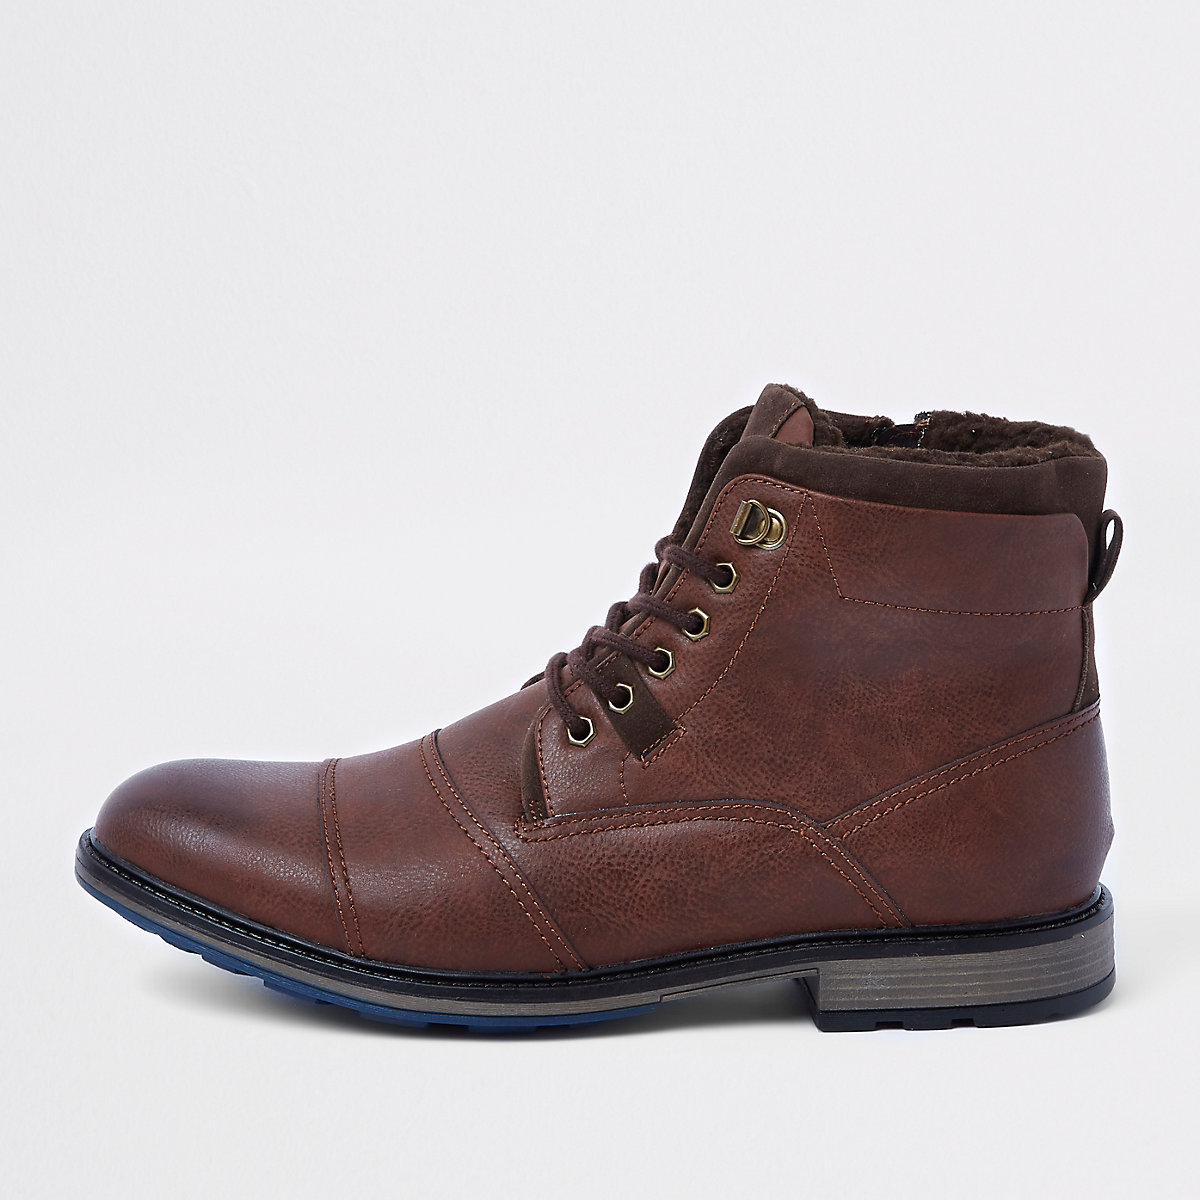 Brown lace-up fleece lined military boots